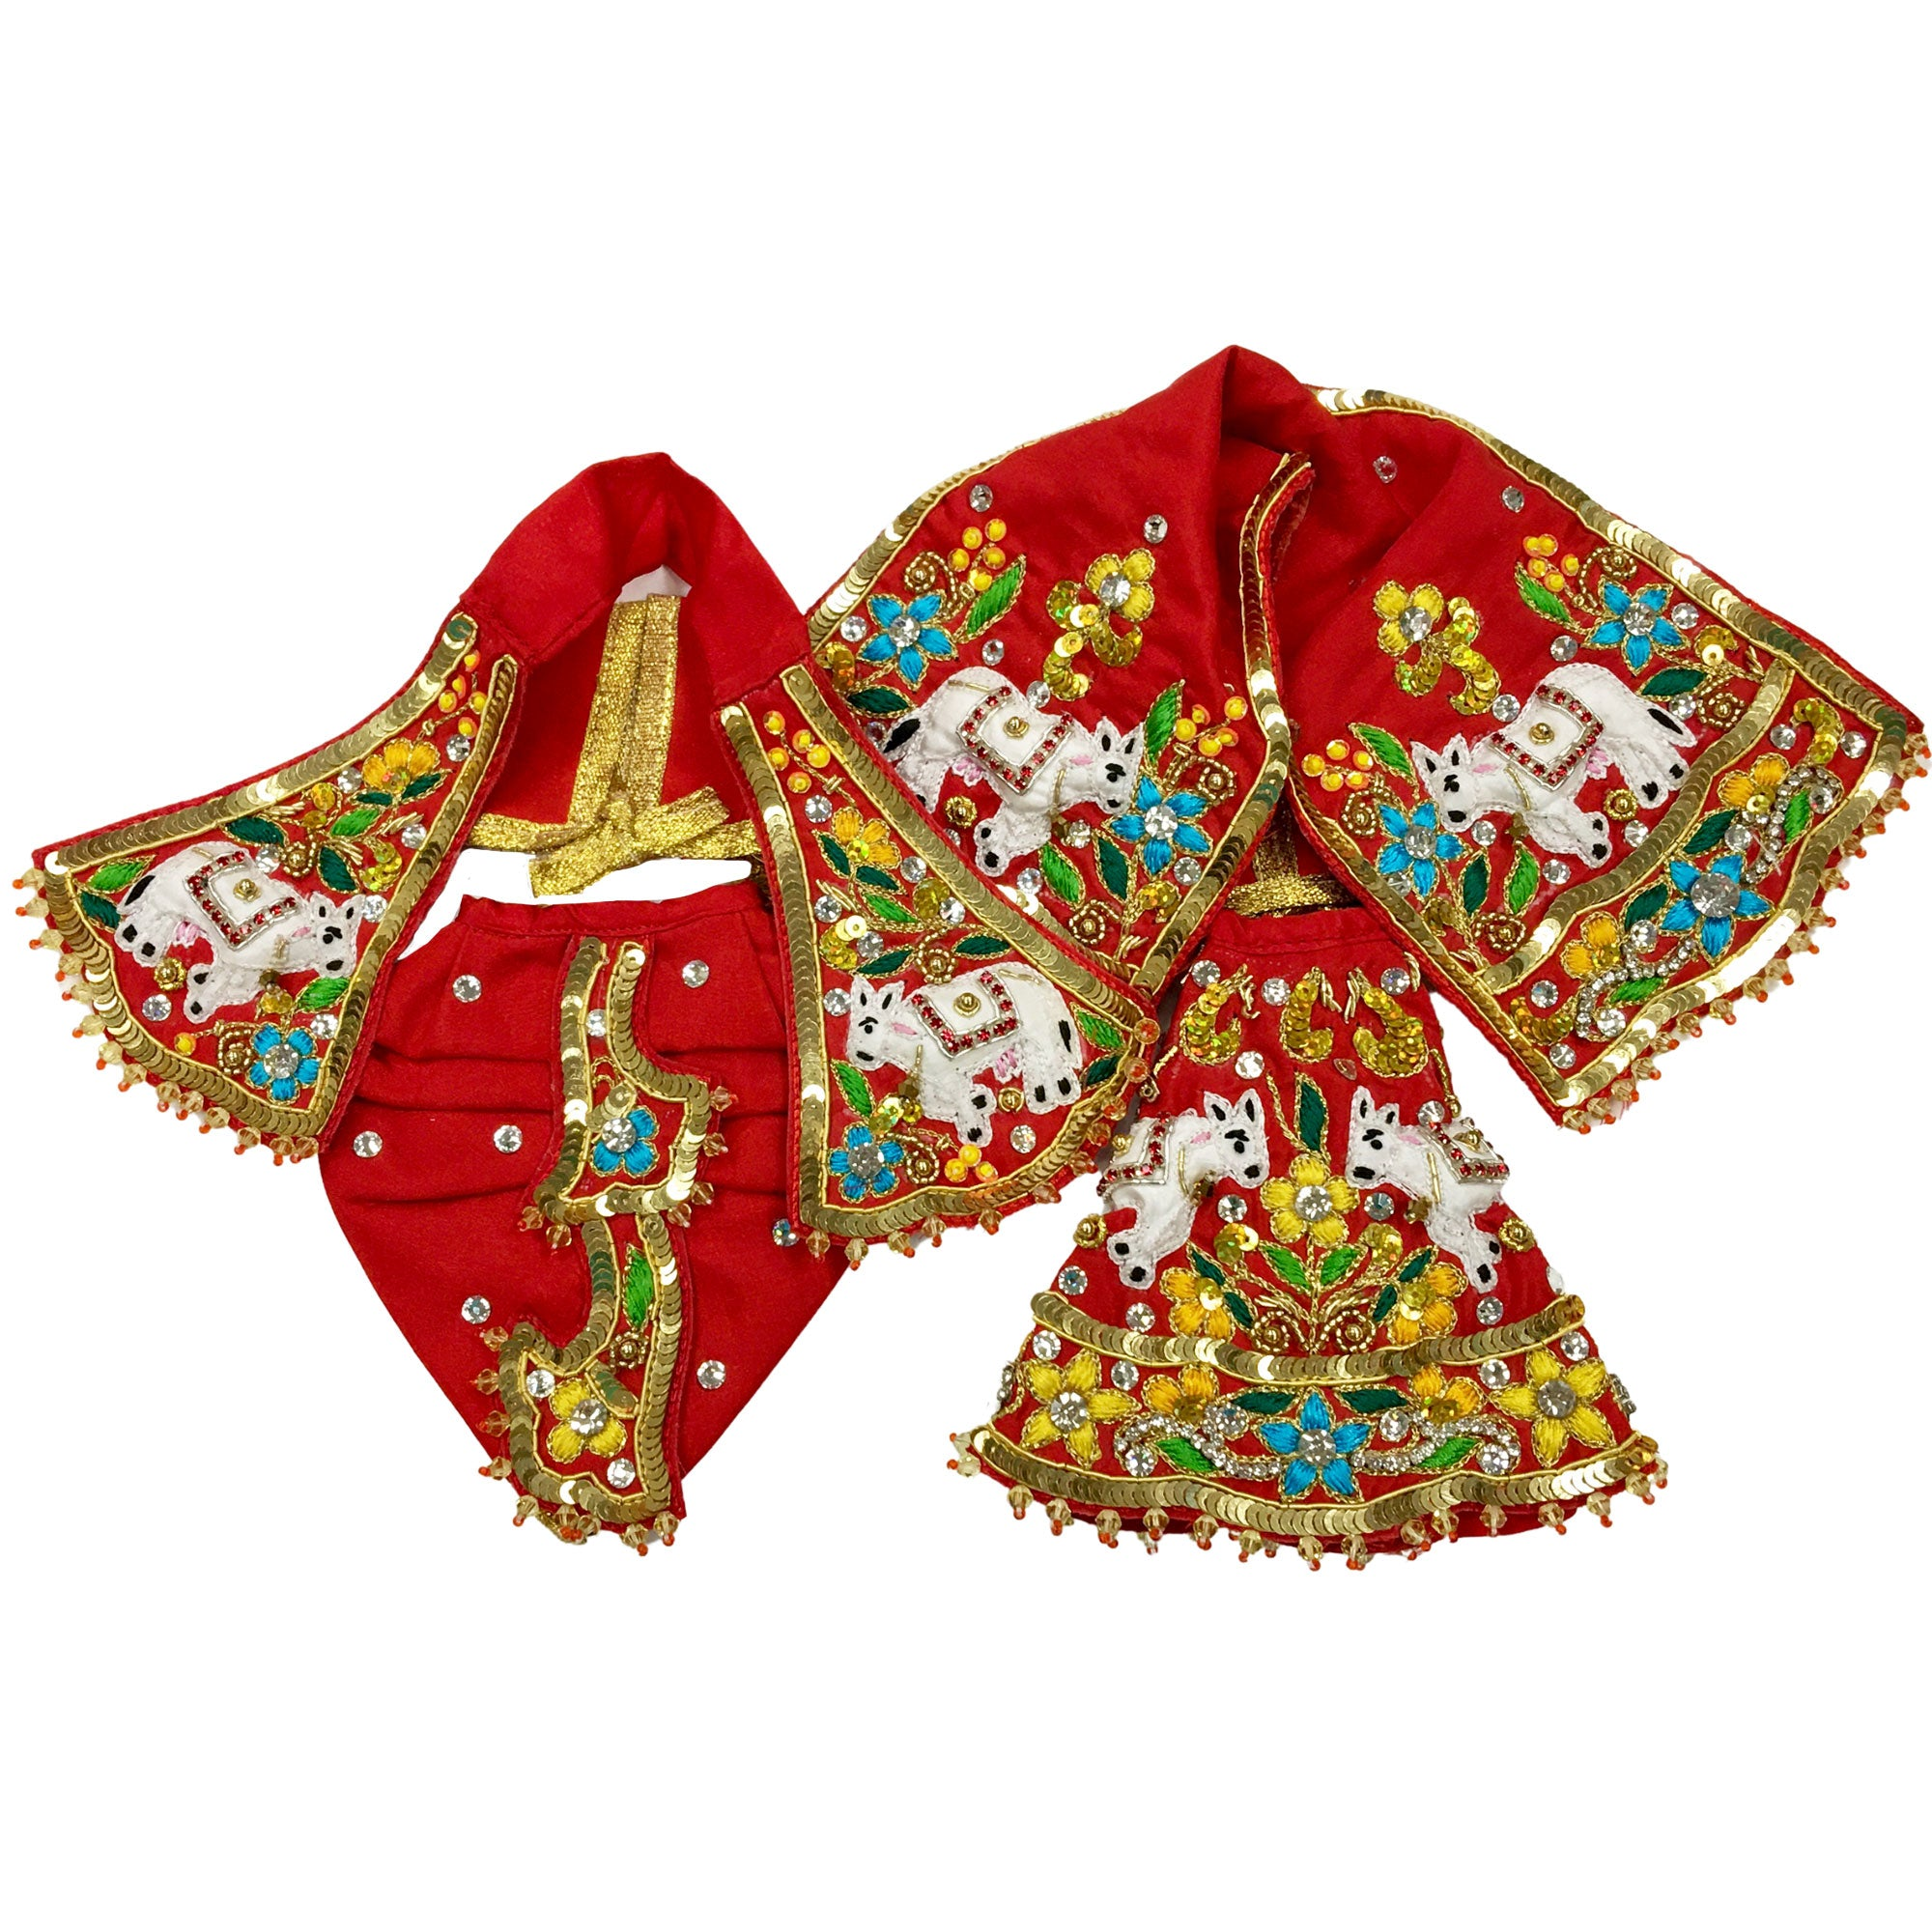 Radha Krishna Loves Cows - Red and Gold  Multicolor - Deity Outfit - (Radha Krishna)